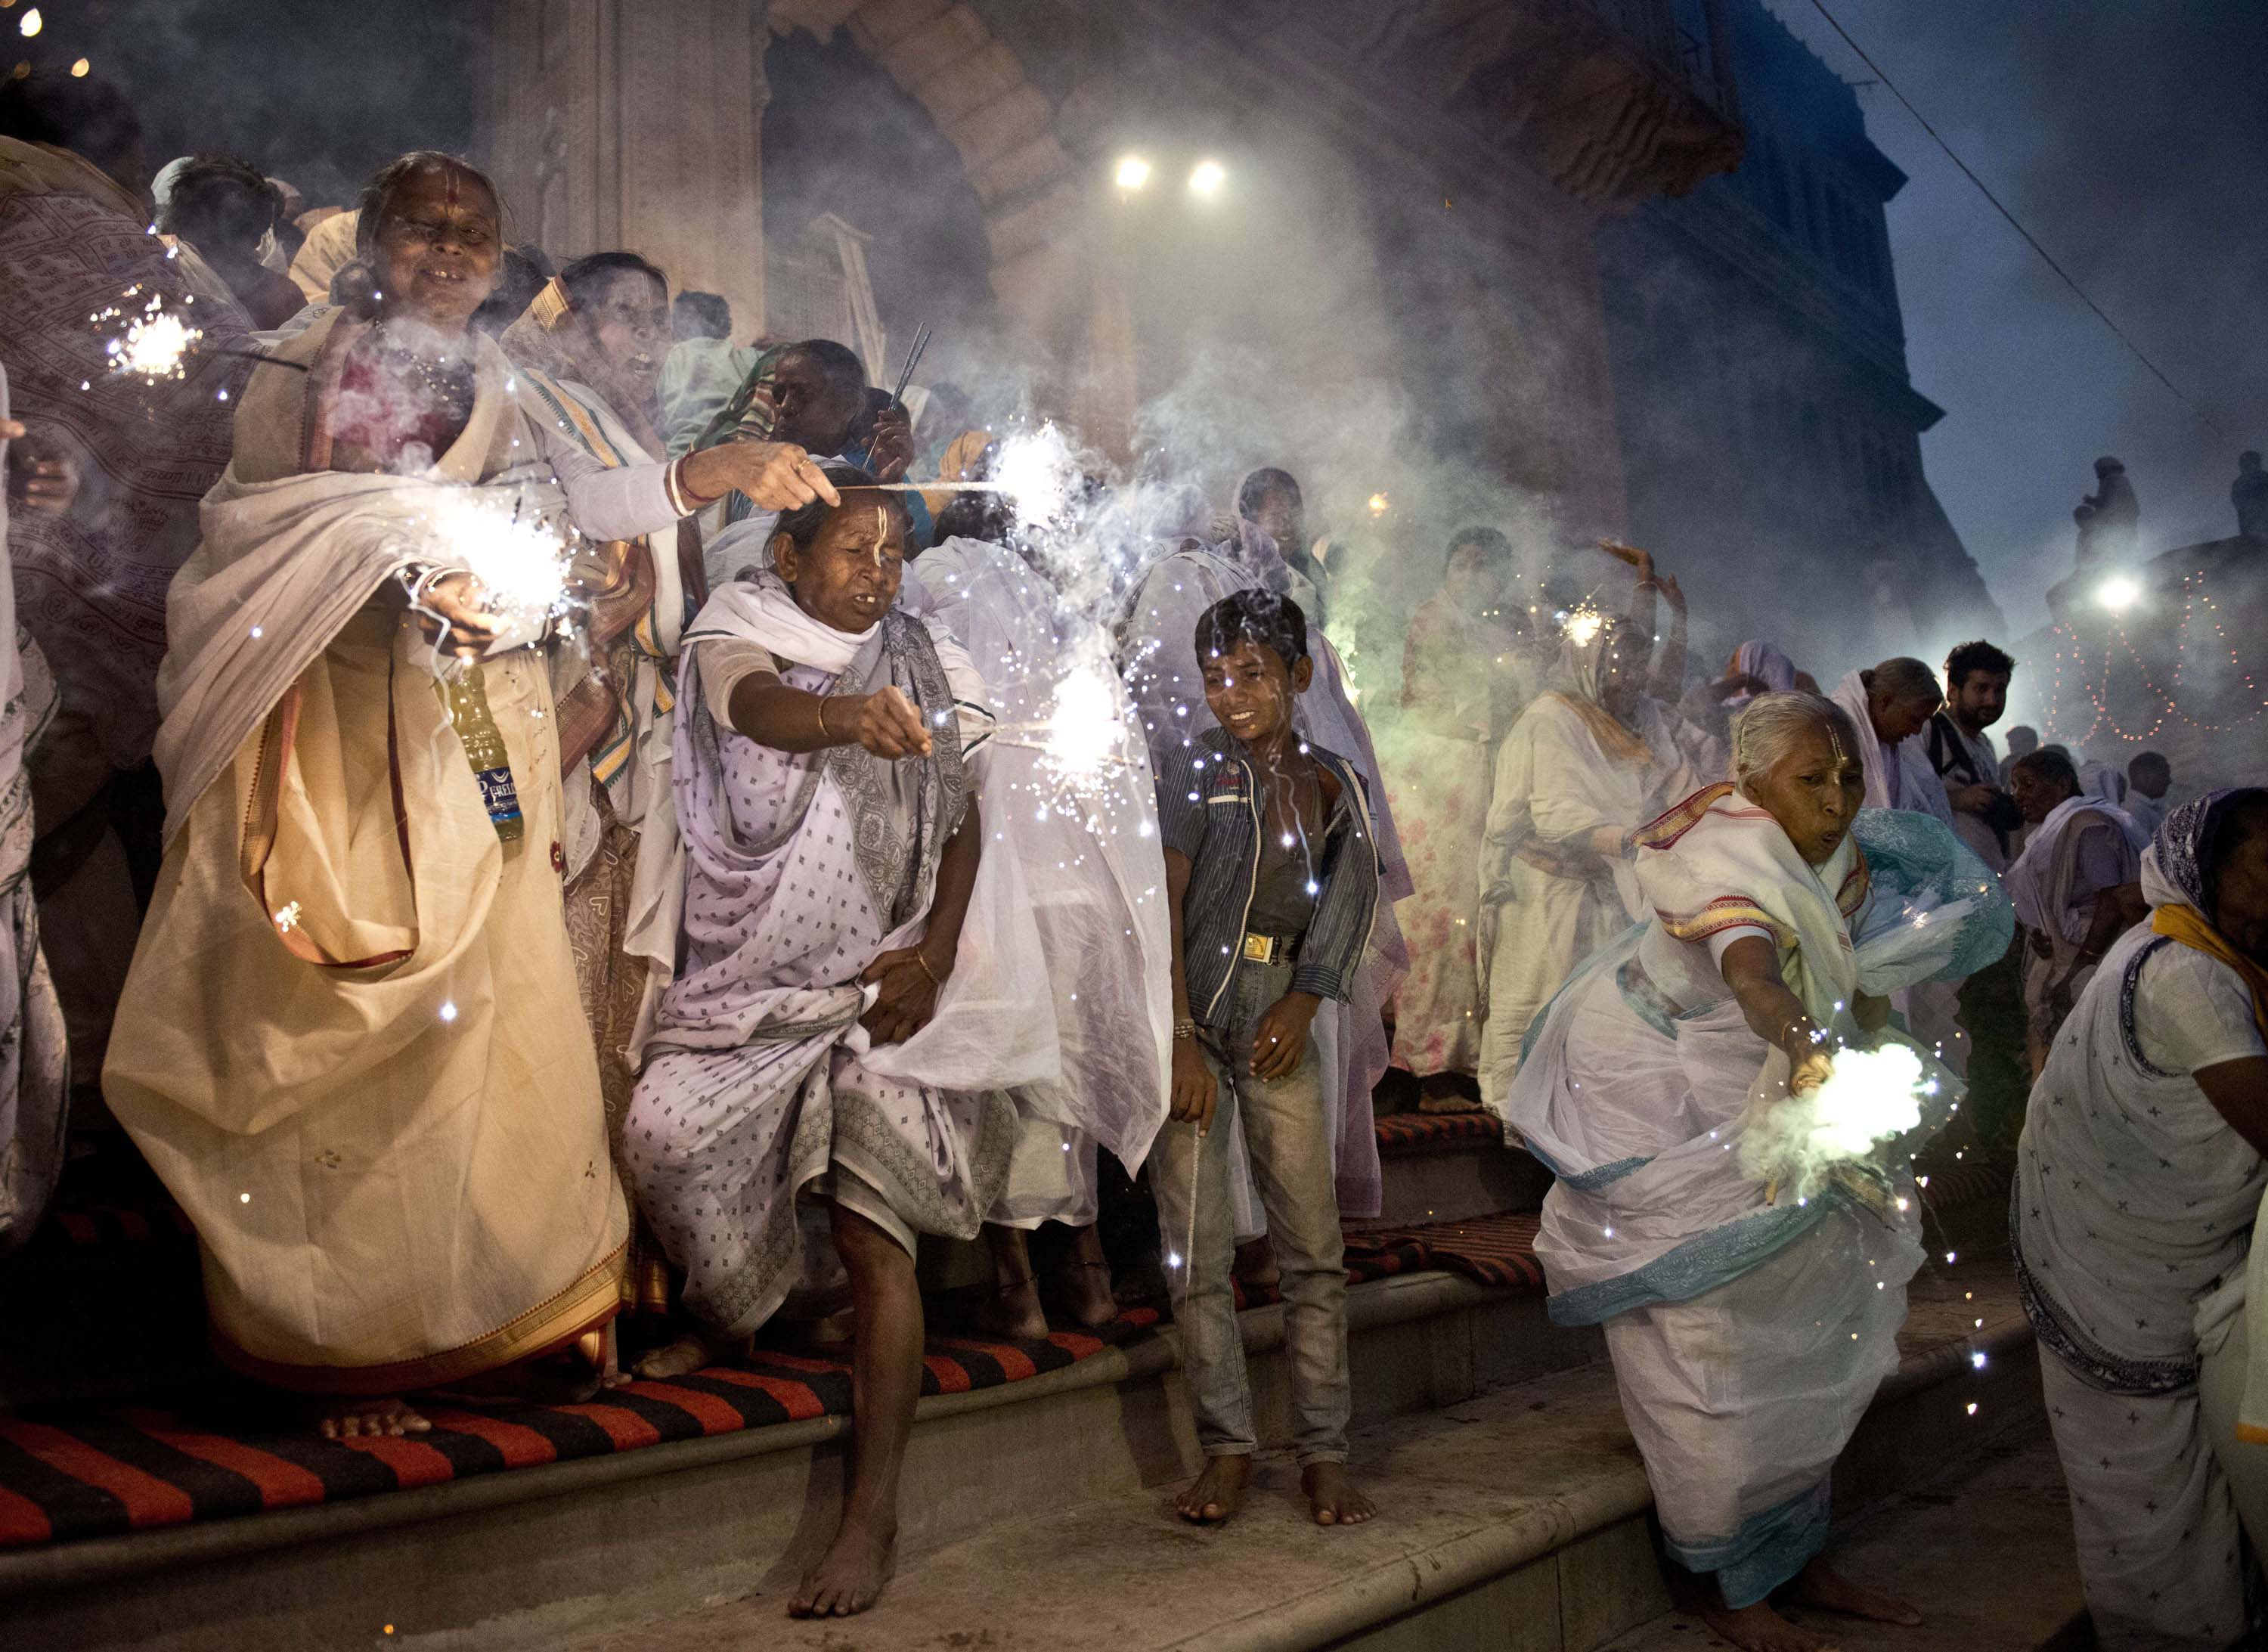 Indian widows wave sparklers as they participate in a celebration for the Hindu festival Diwali on the banks of the Yamuna river in the northern city of Vrindavan on Oct. 21, 2014.